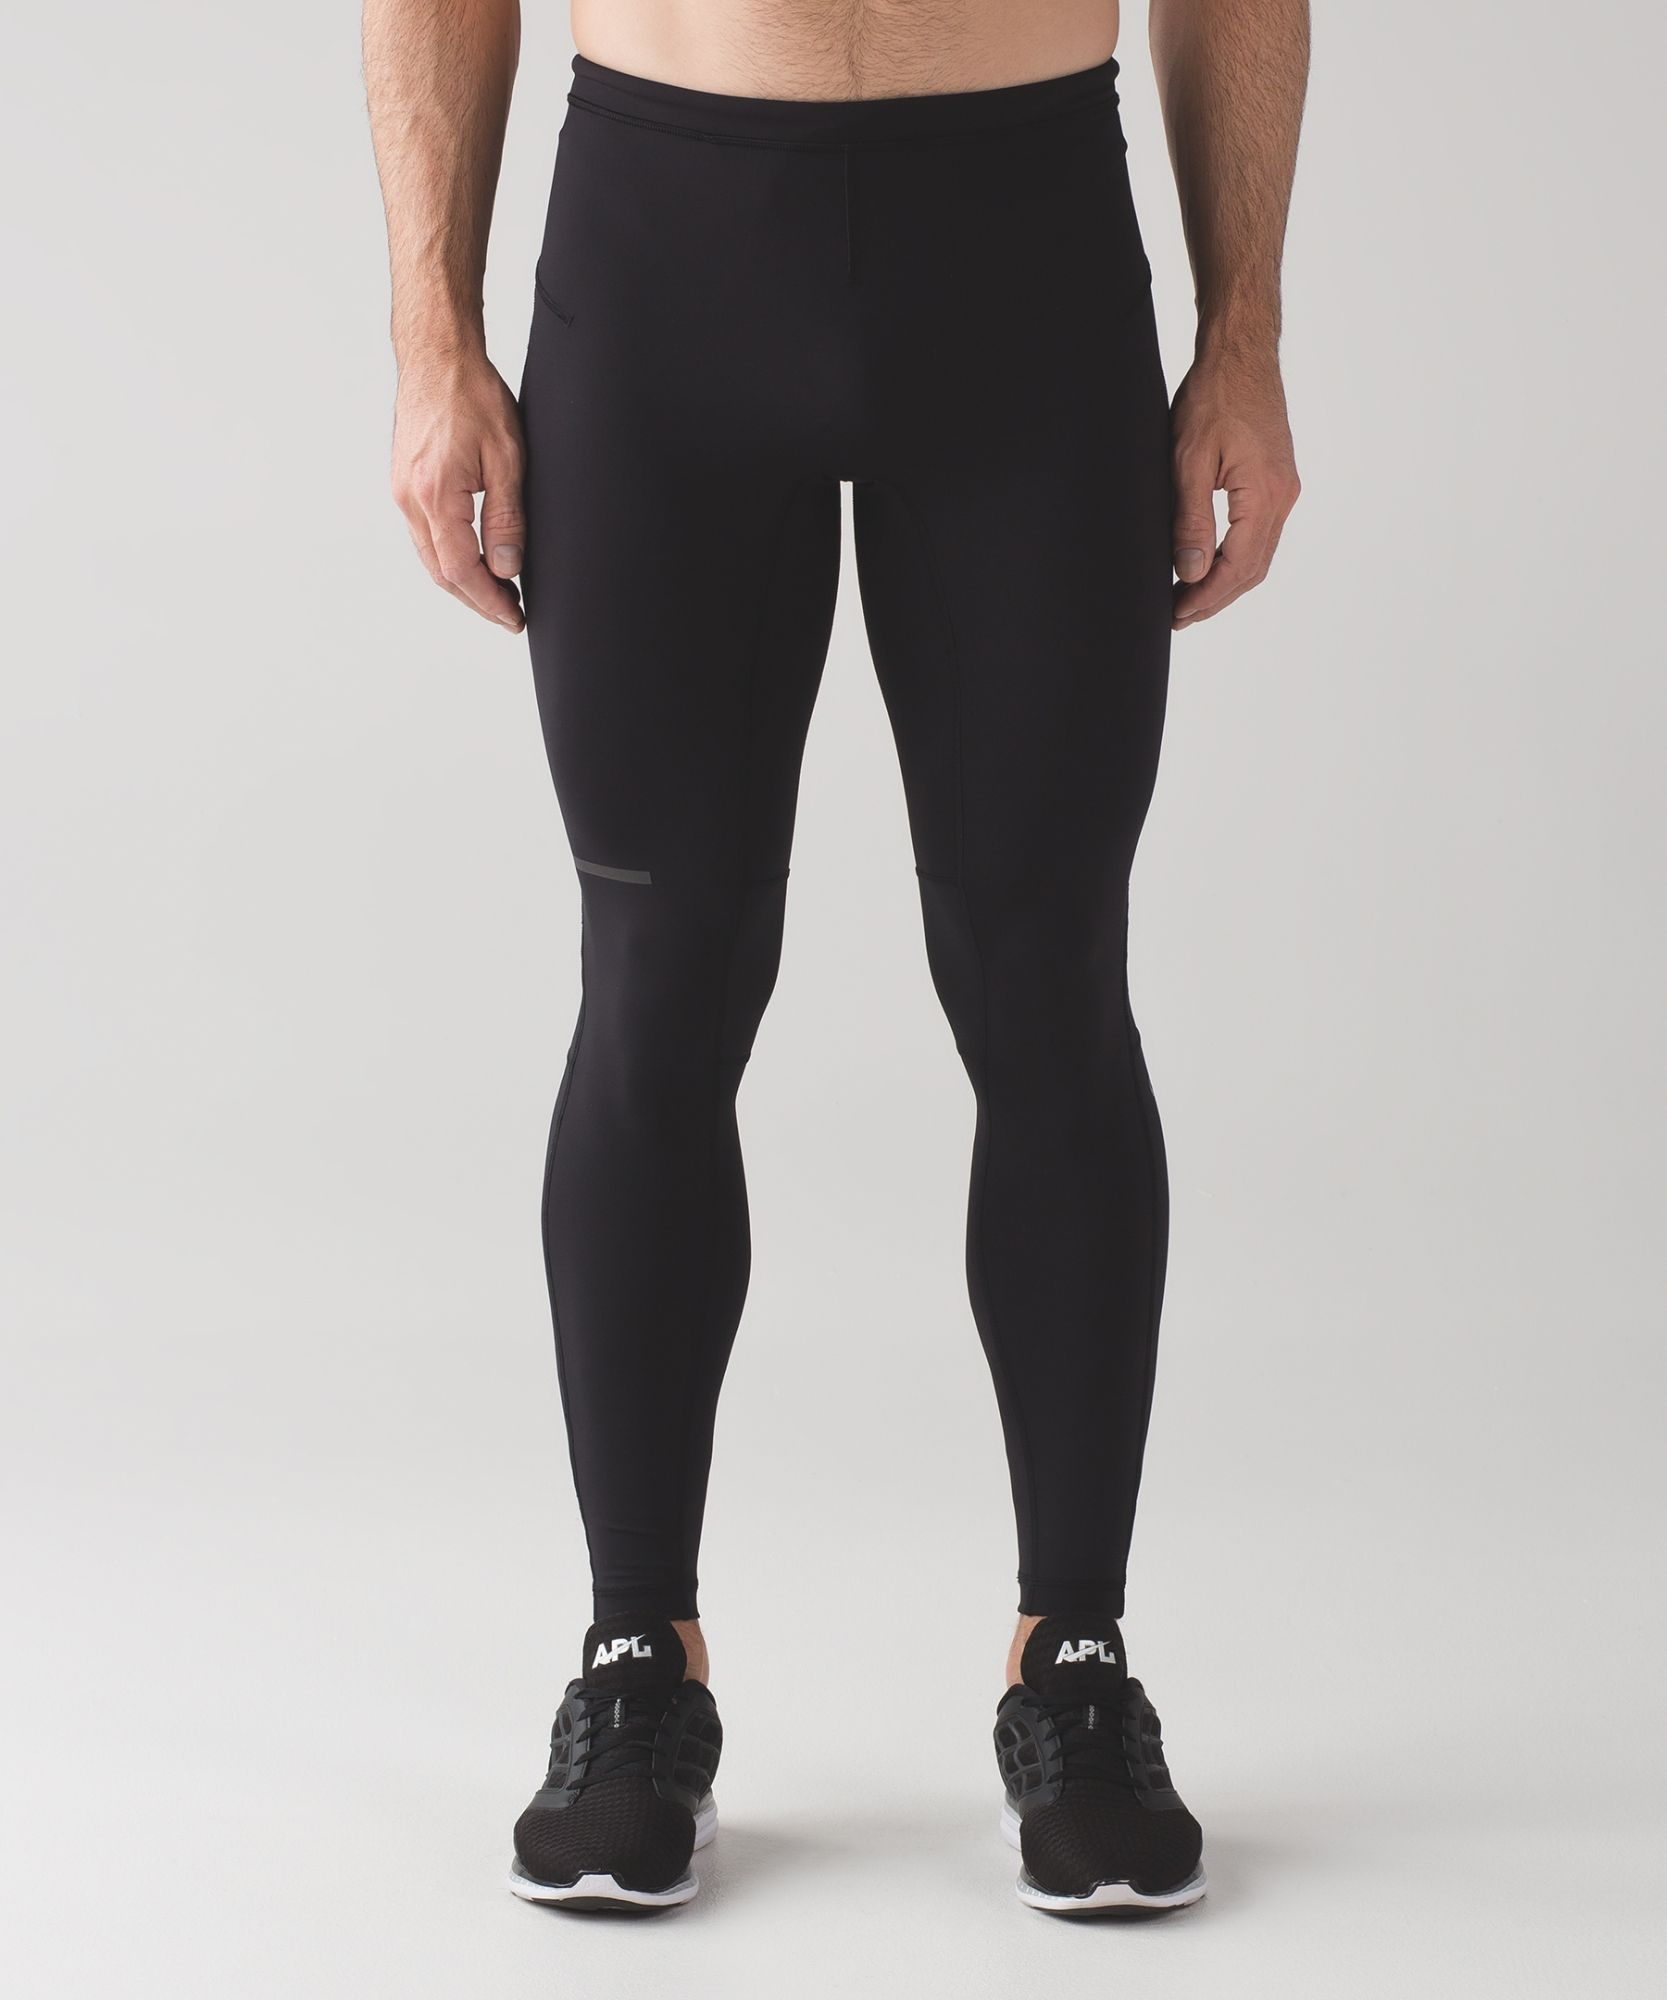 0af8fa9f4fc Surge Tight *Dwr | Men's Running Pants | lululemon athletica ...